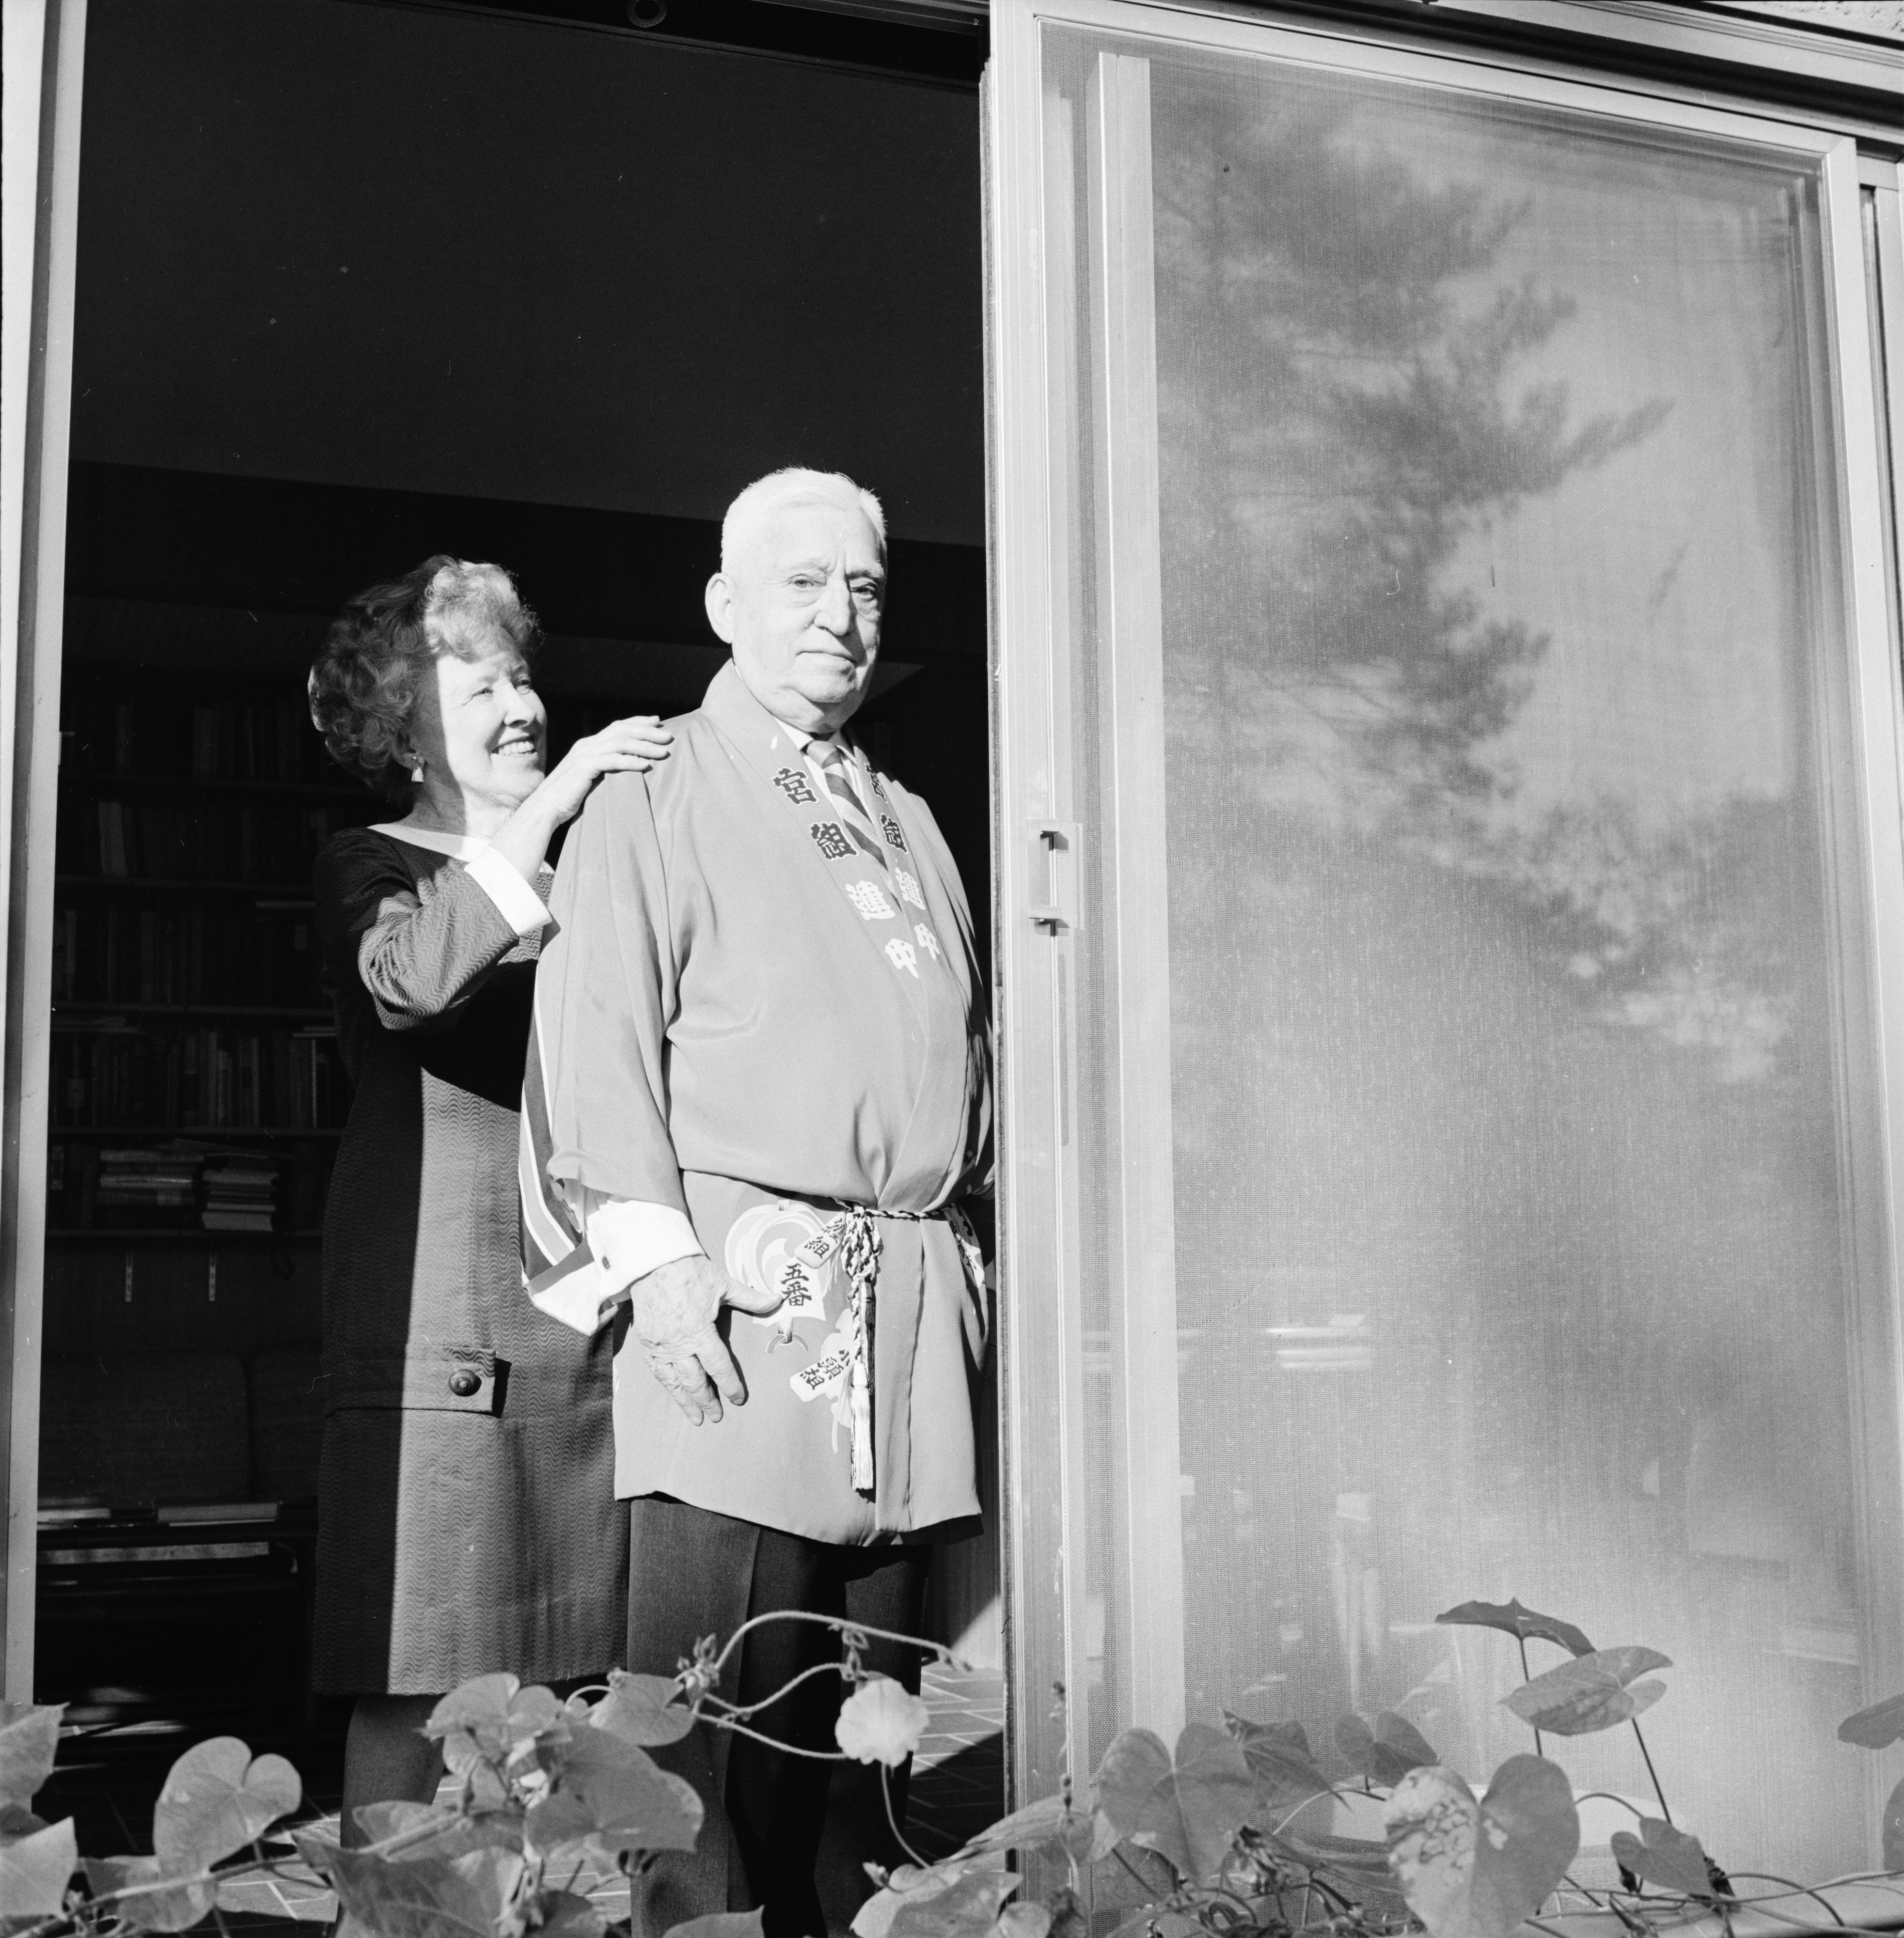 Mrs. Sink adjusts husband Charles A. Sink's coat prior to an early membership tea, October 1968 image